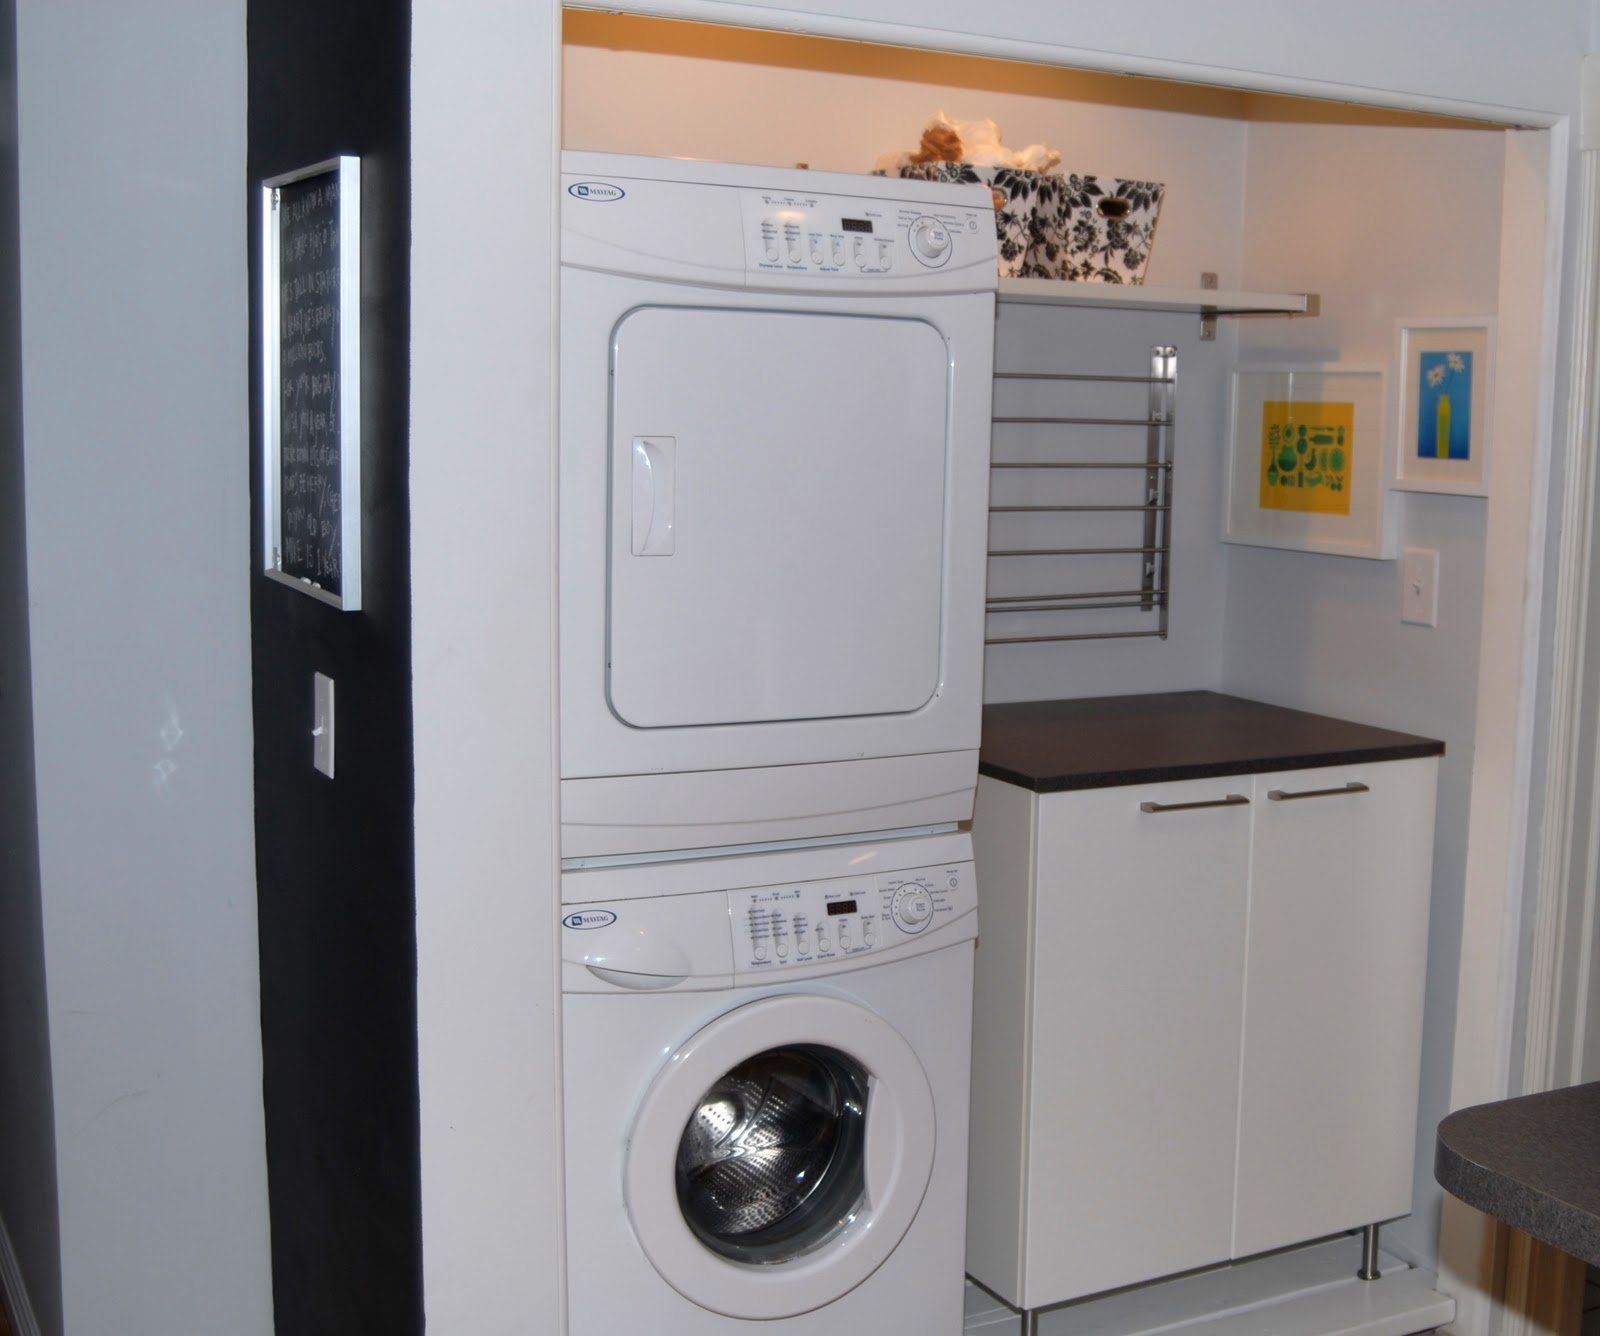 furniture saving small spaces laundry room design using stacked washer dryer and wood wall mounted overhead shelving units over cabinet with stainless steel - Small Washer And Dryer